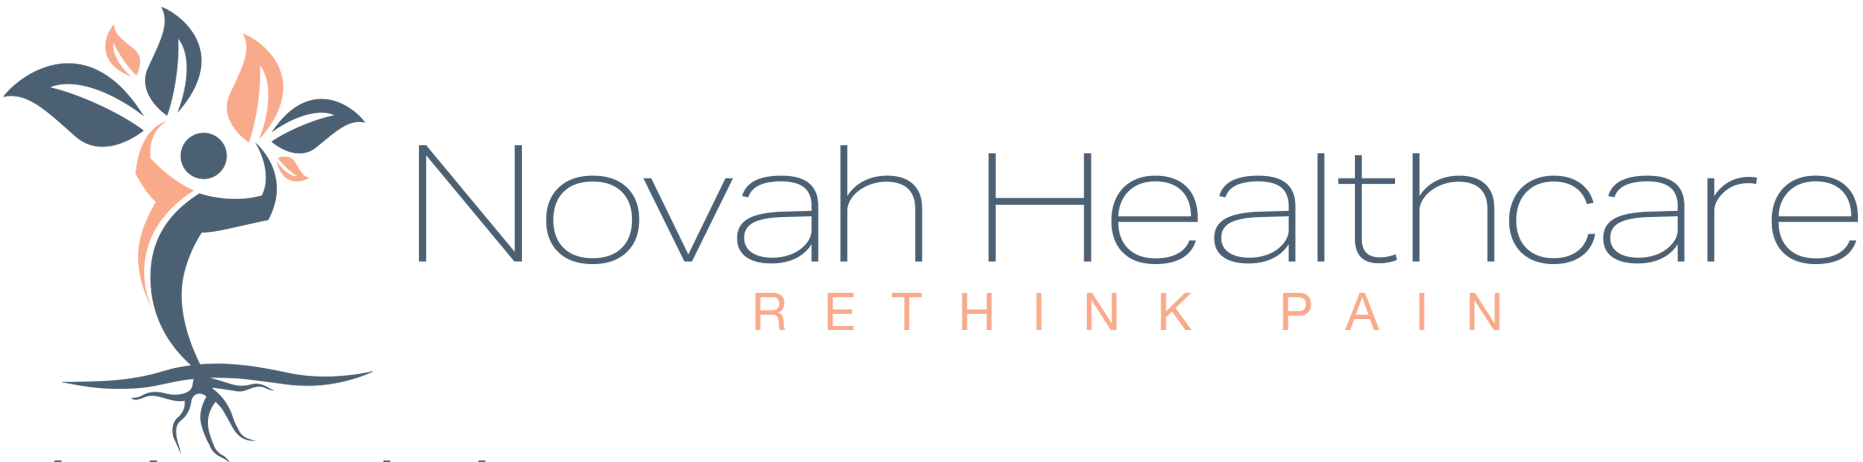 Novah Healthcare